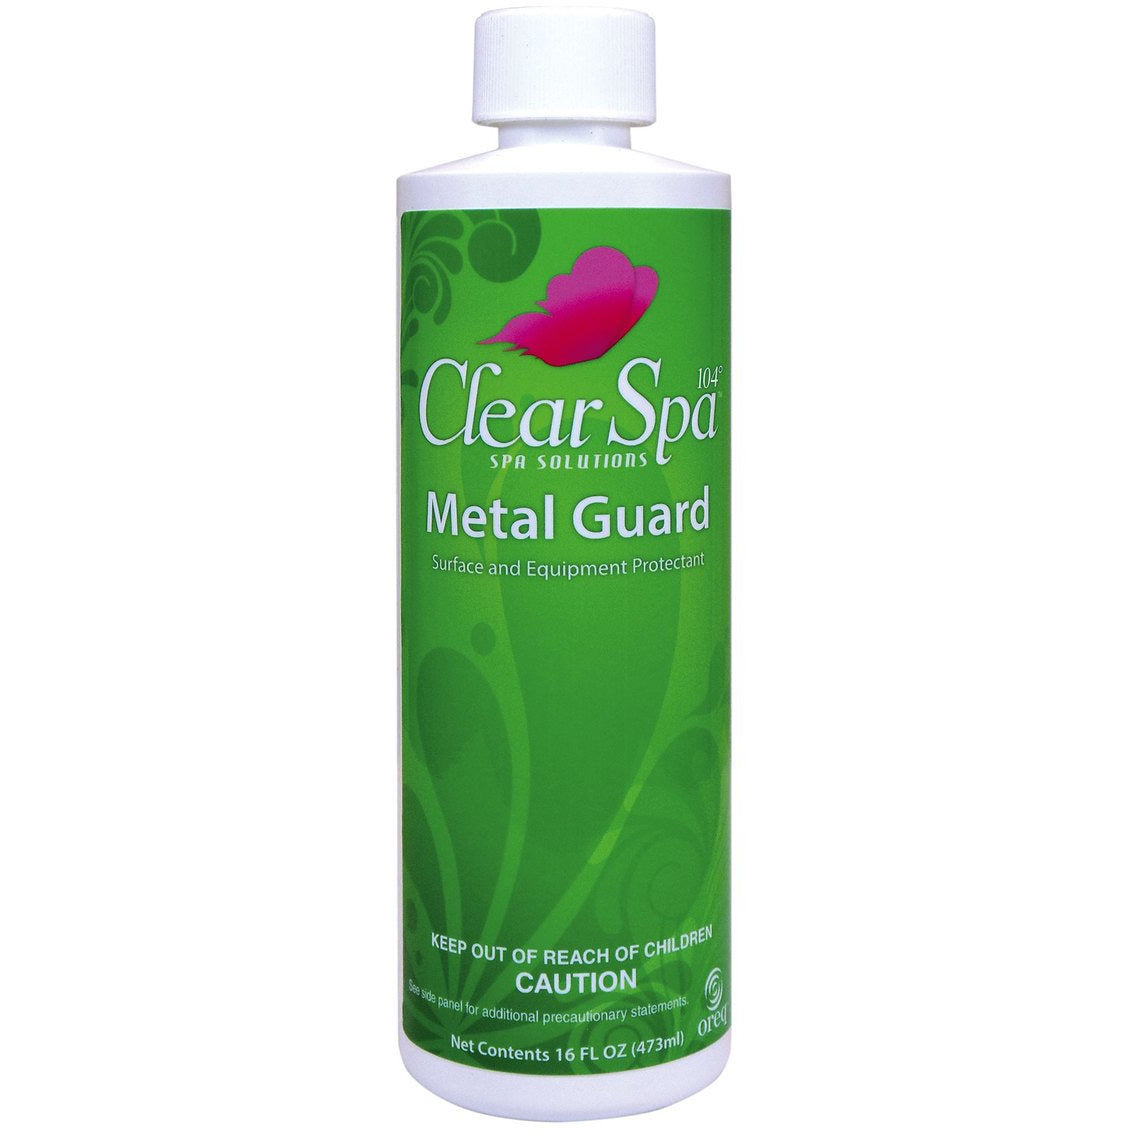 ClearSpa Metal Guard